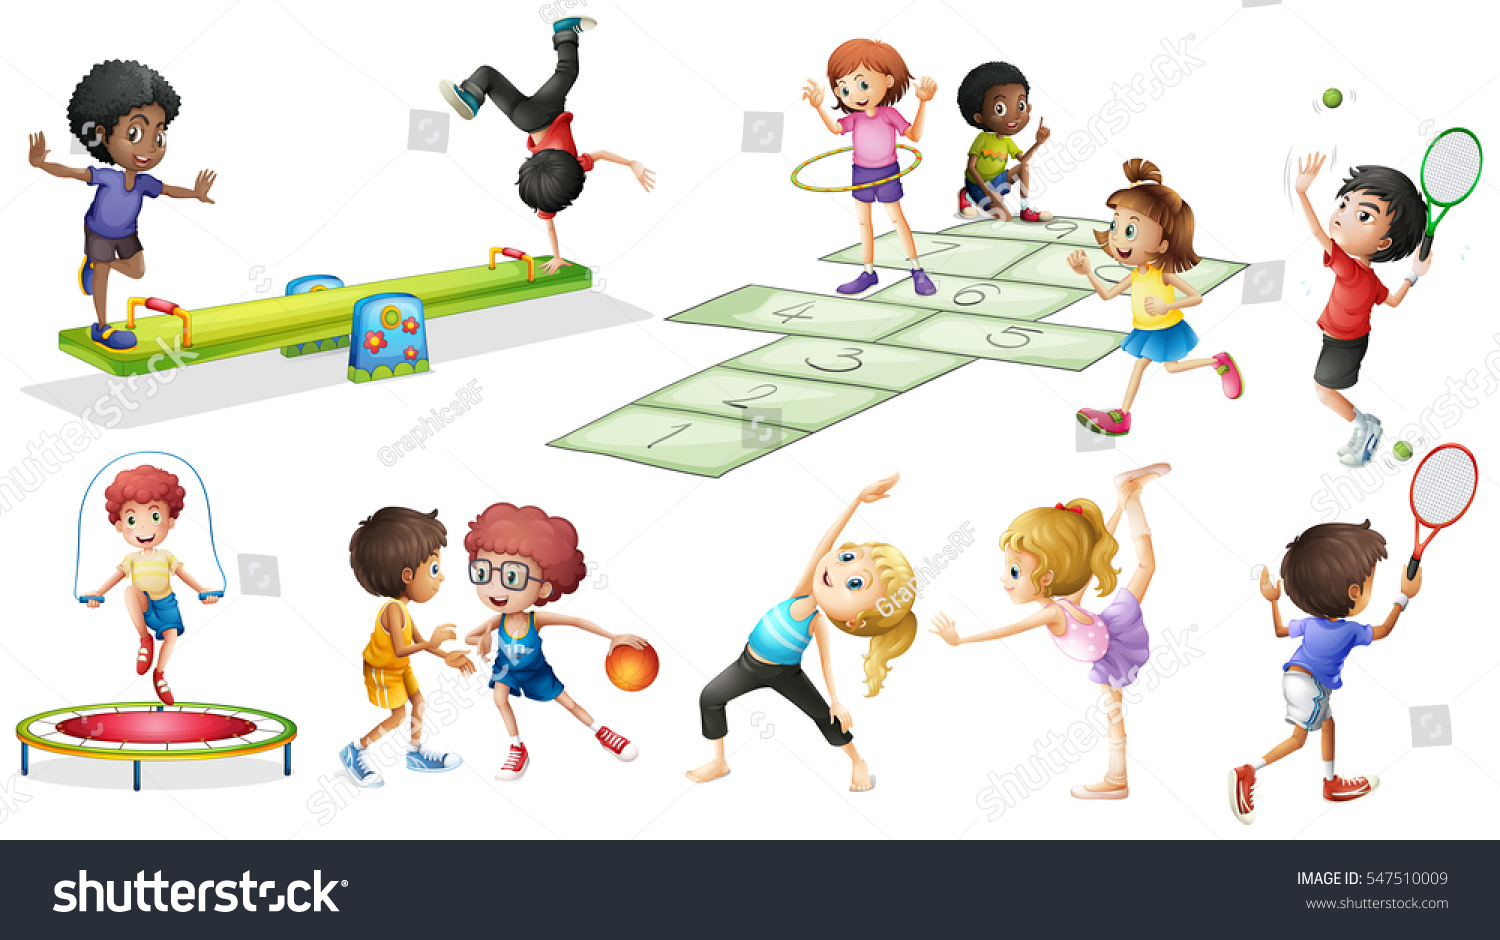 Kids Playing Games Clipart.